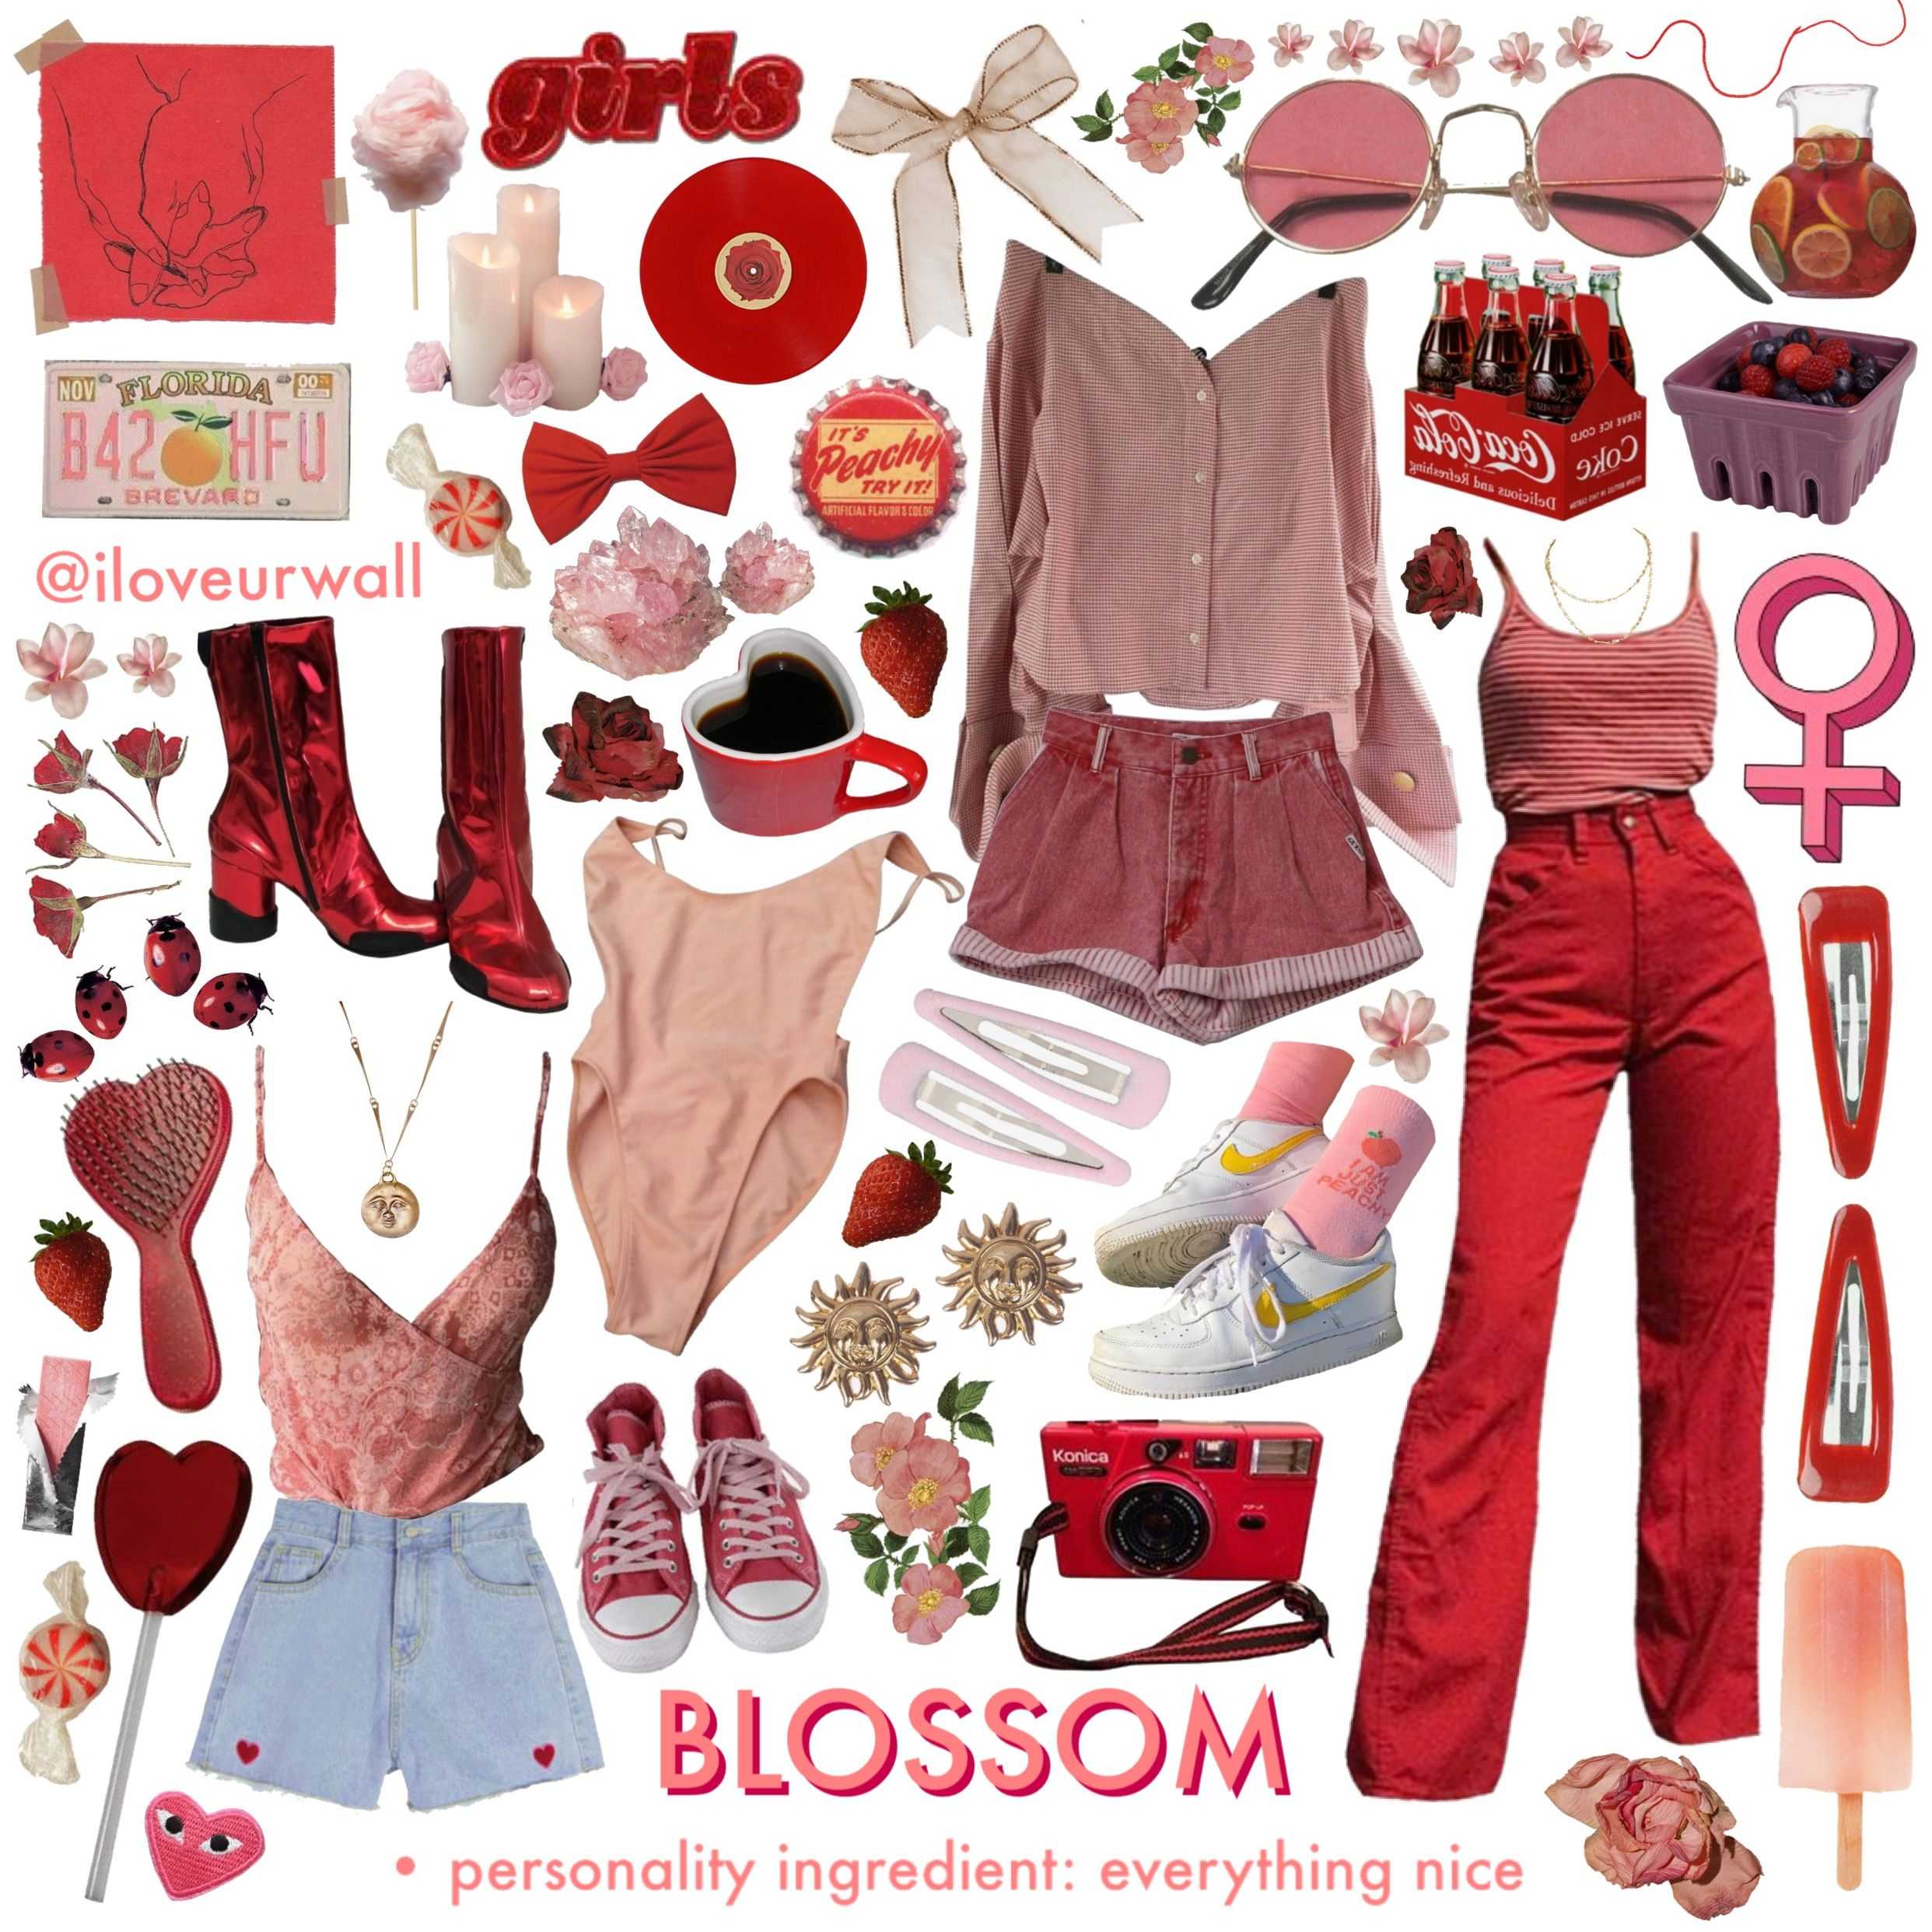 Blossom, powerpuff girls | Aesthetic clothes, Cute outfits ...